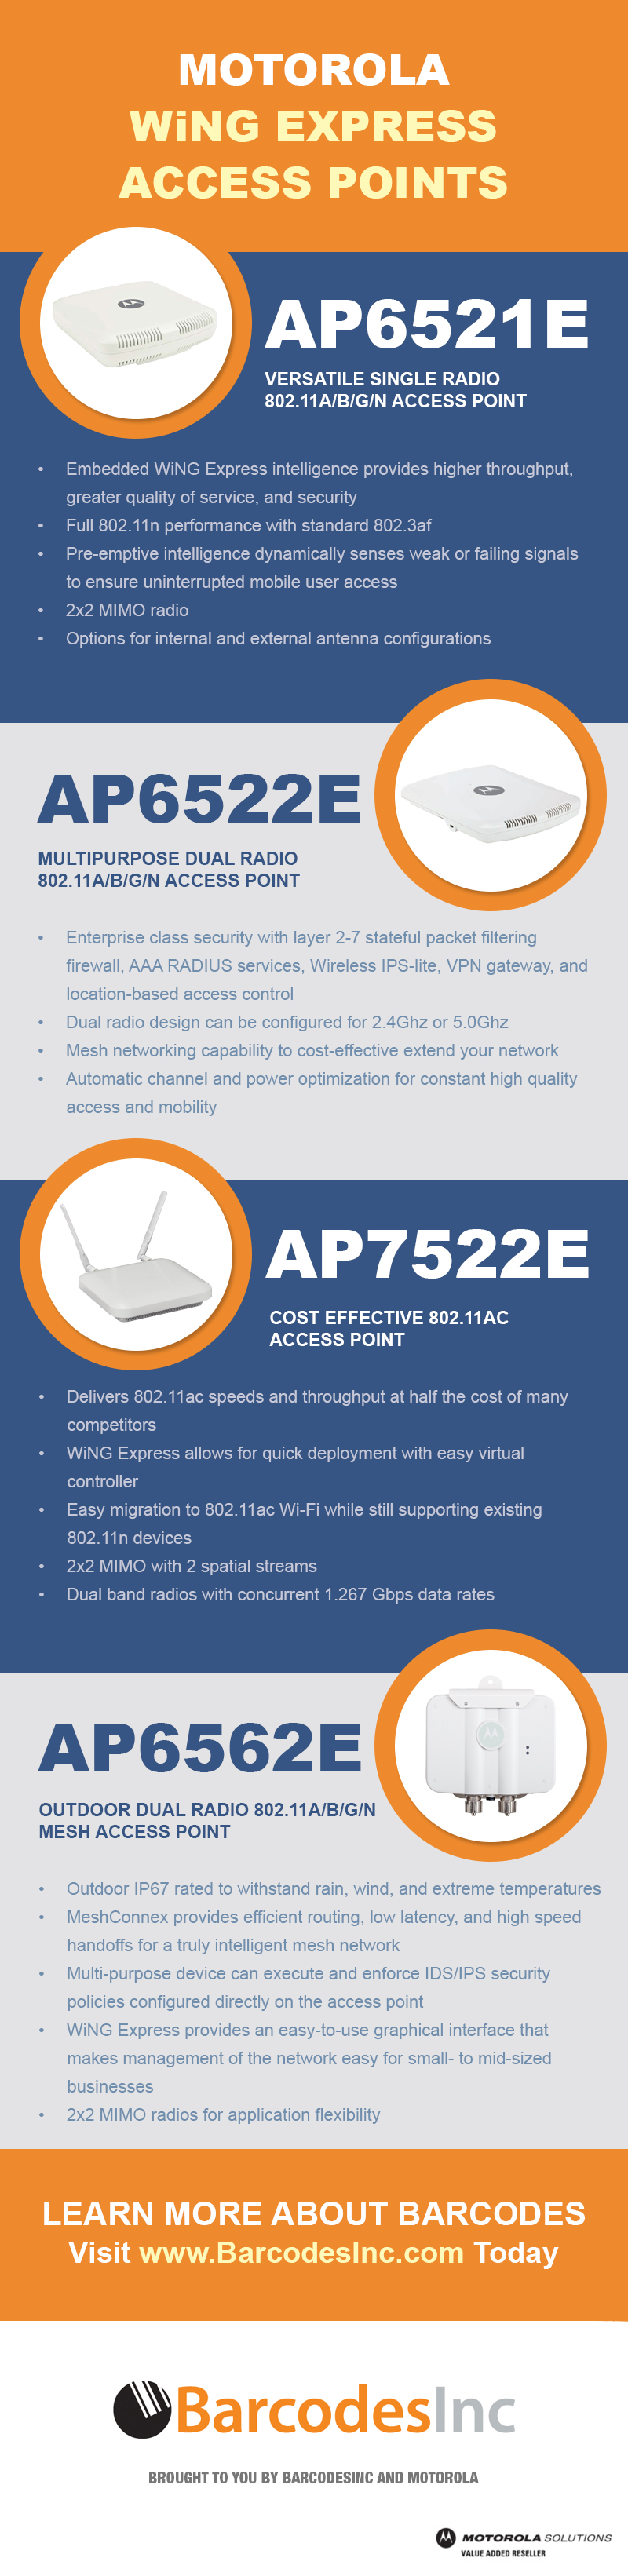 Motorola Enterprise - WiNG Express Acces Points